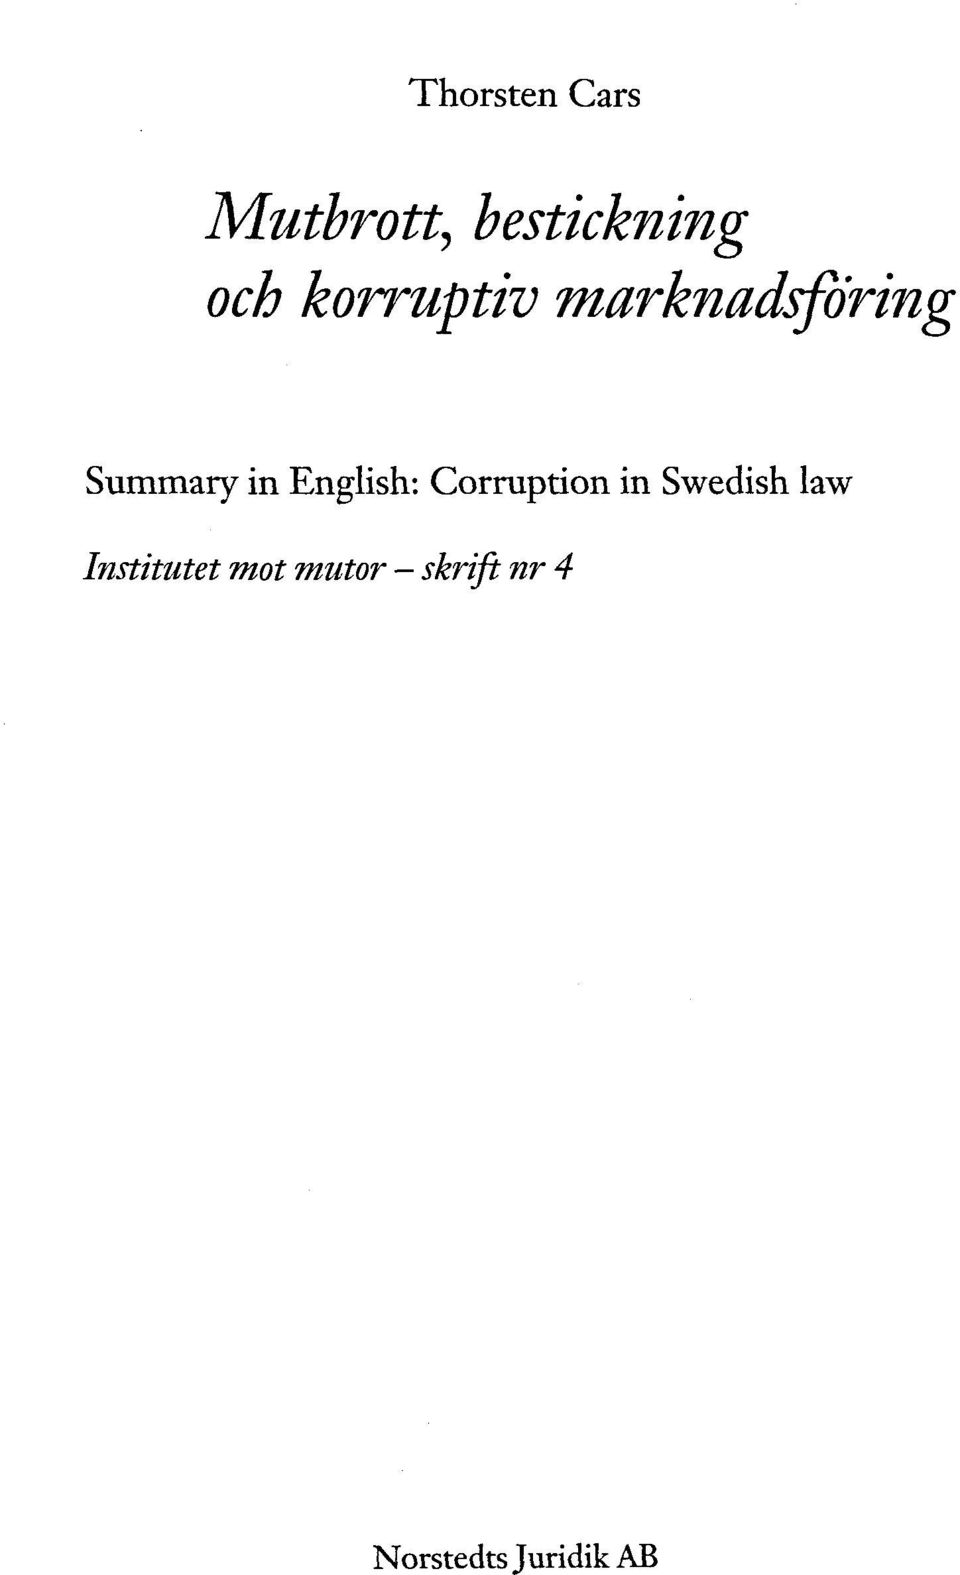 English: Corruption in Swedish law